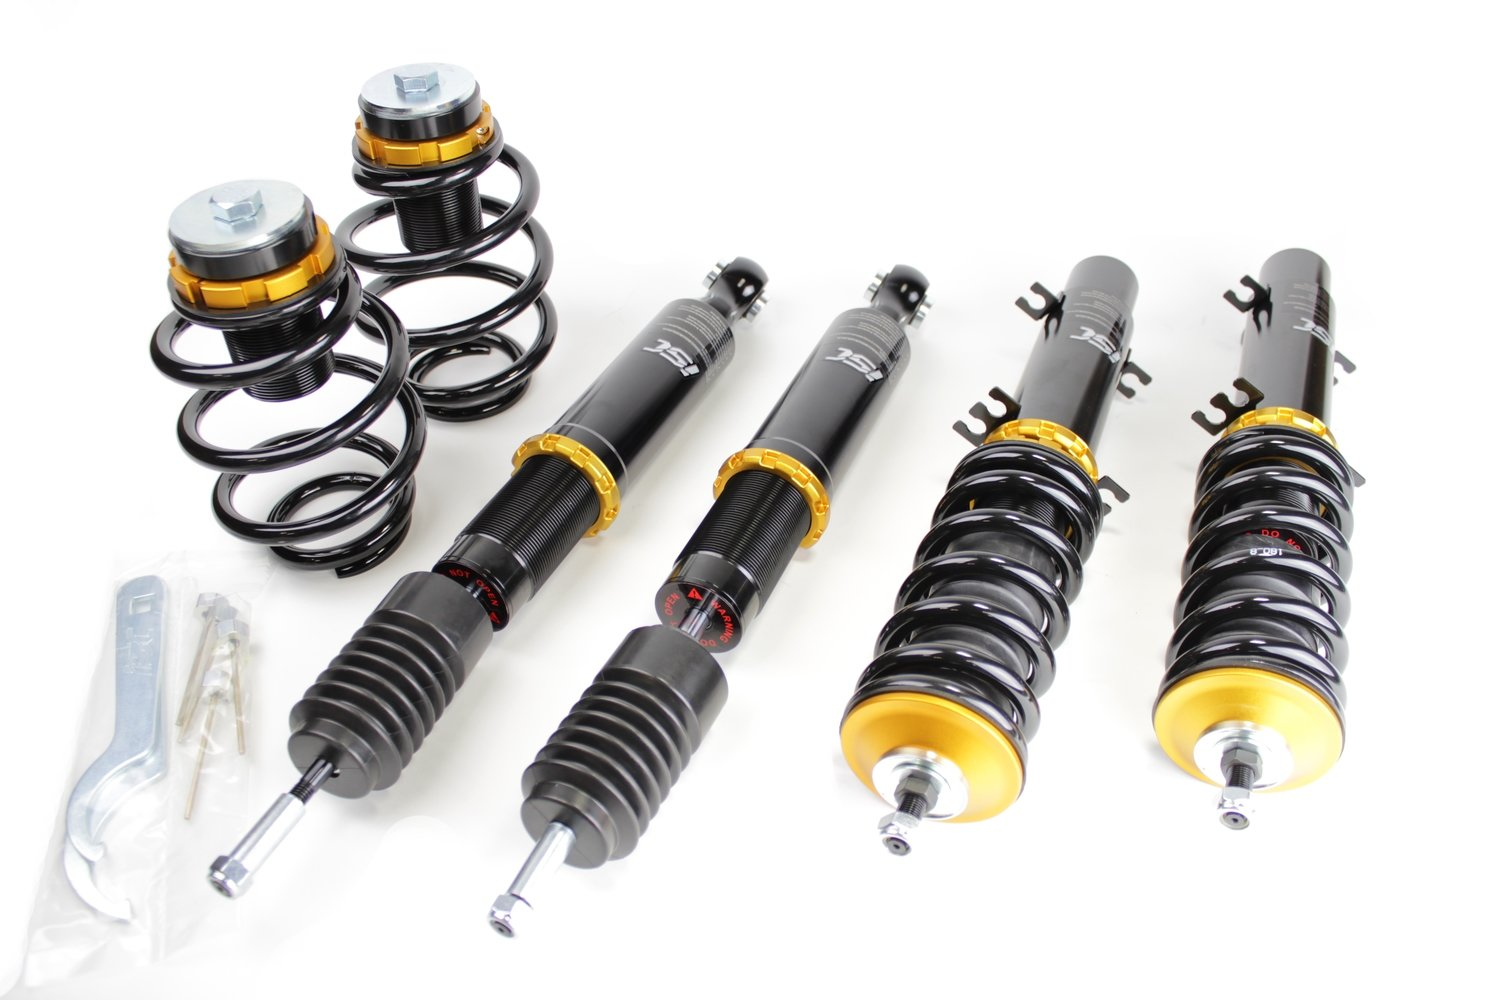 Volkswagen Golf Mk4 (98-04) ISC Basic Coilover Suspension